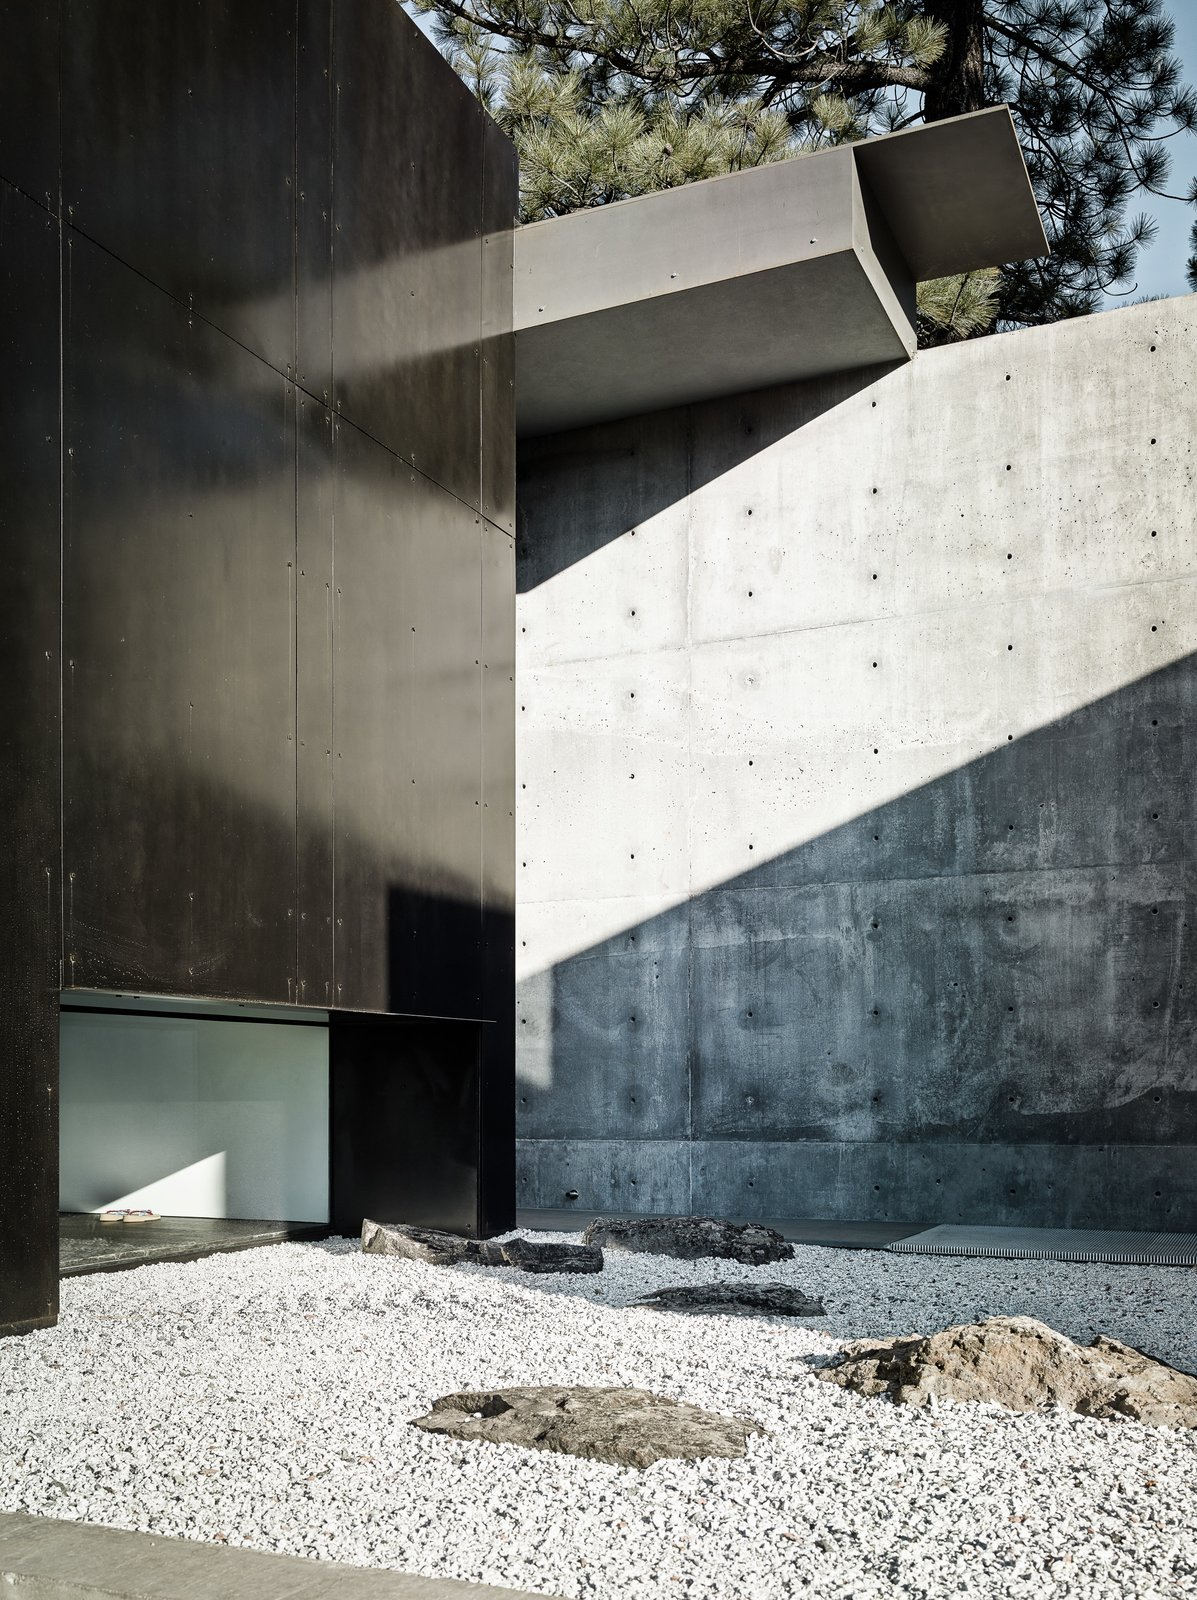 Outdoor, Concrete Fences, Wall, Side Yard, Hardscapes, and Trees The exterior features a poetic layering of spaces that highlights the interplay of light and dark.     Photo 5 of 18 in This Concrete Abode Stretches Over Giant Boulders